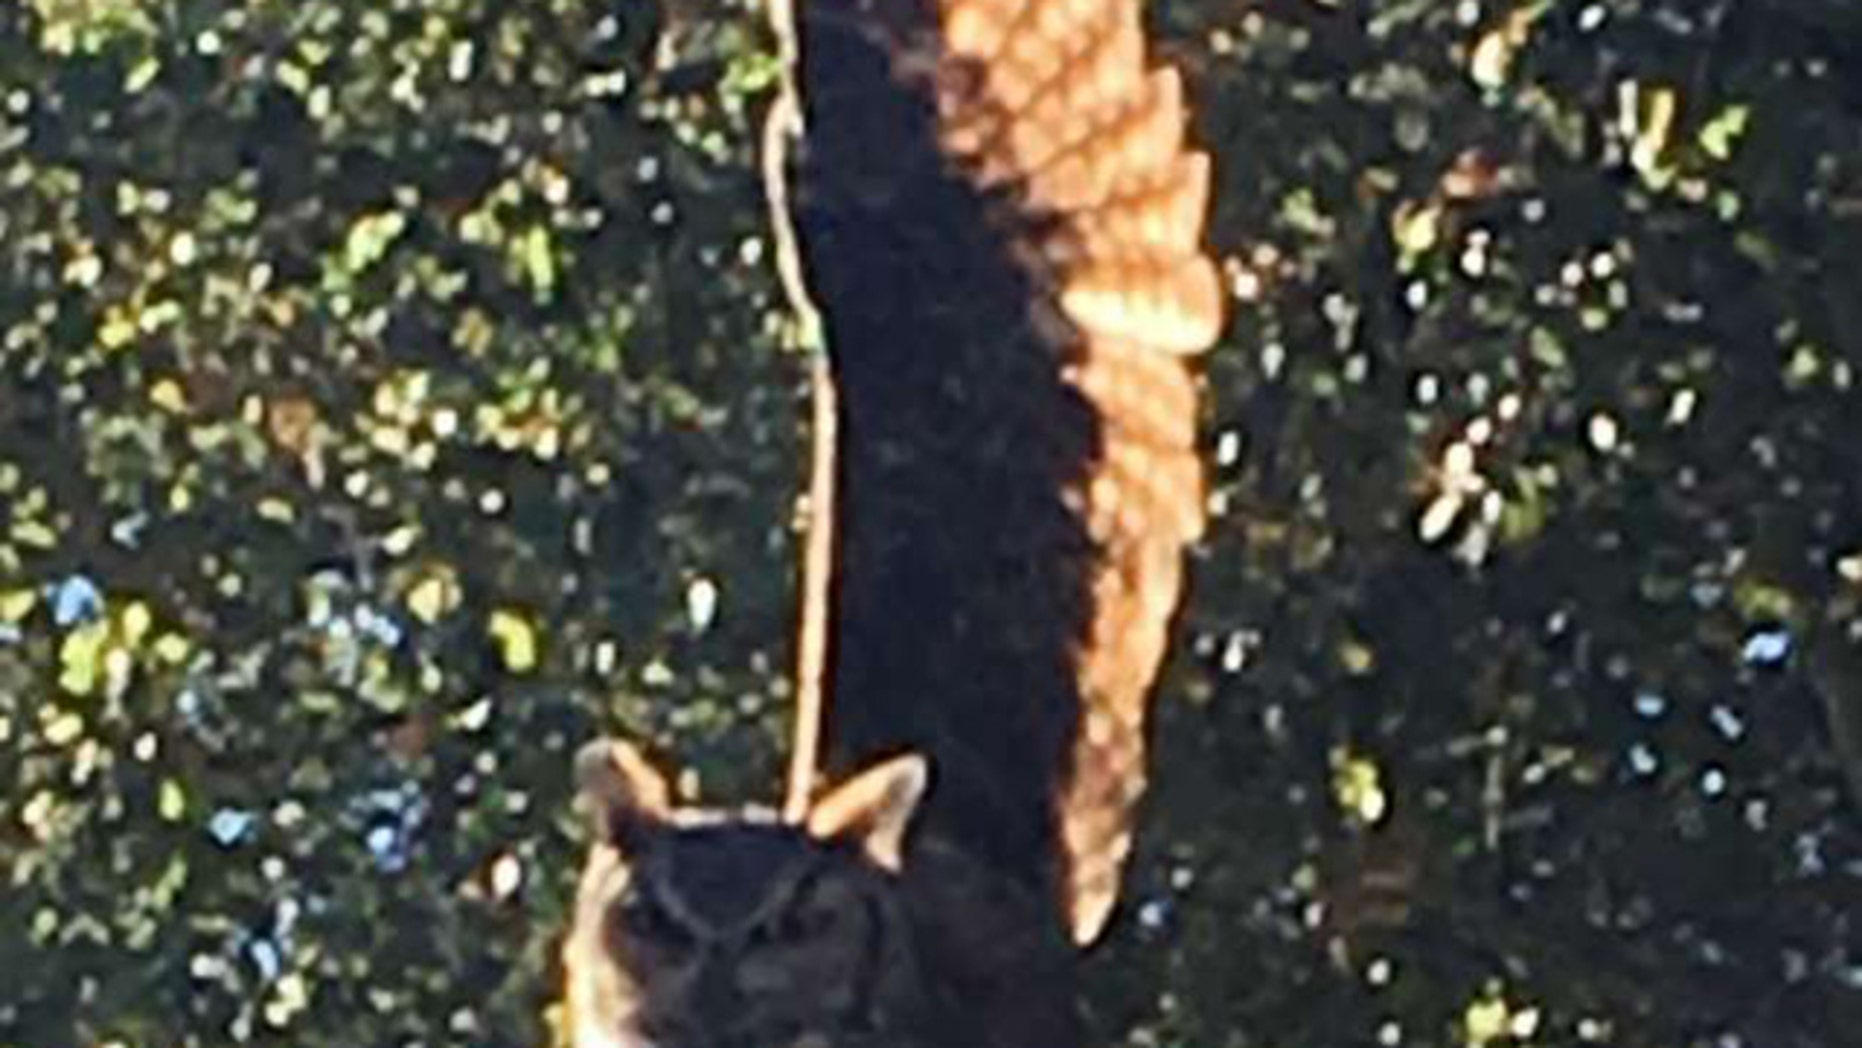 A great horned owl became ensnared in a kite string and needed rescuing in Woodside, Calif., on Monday.